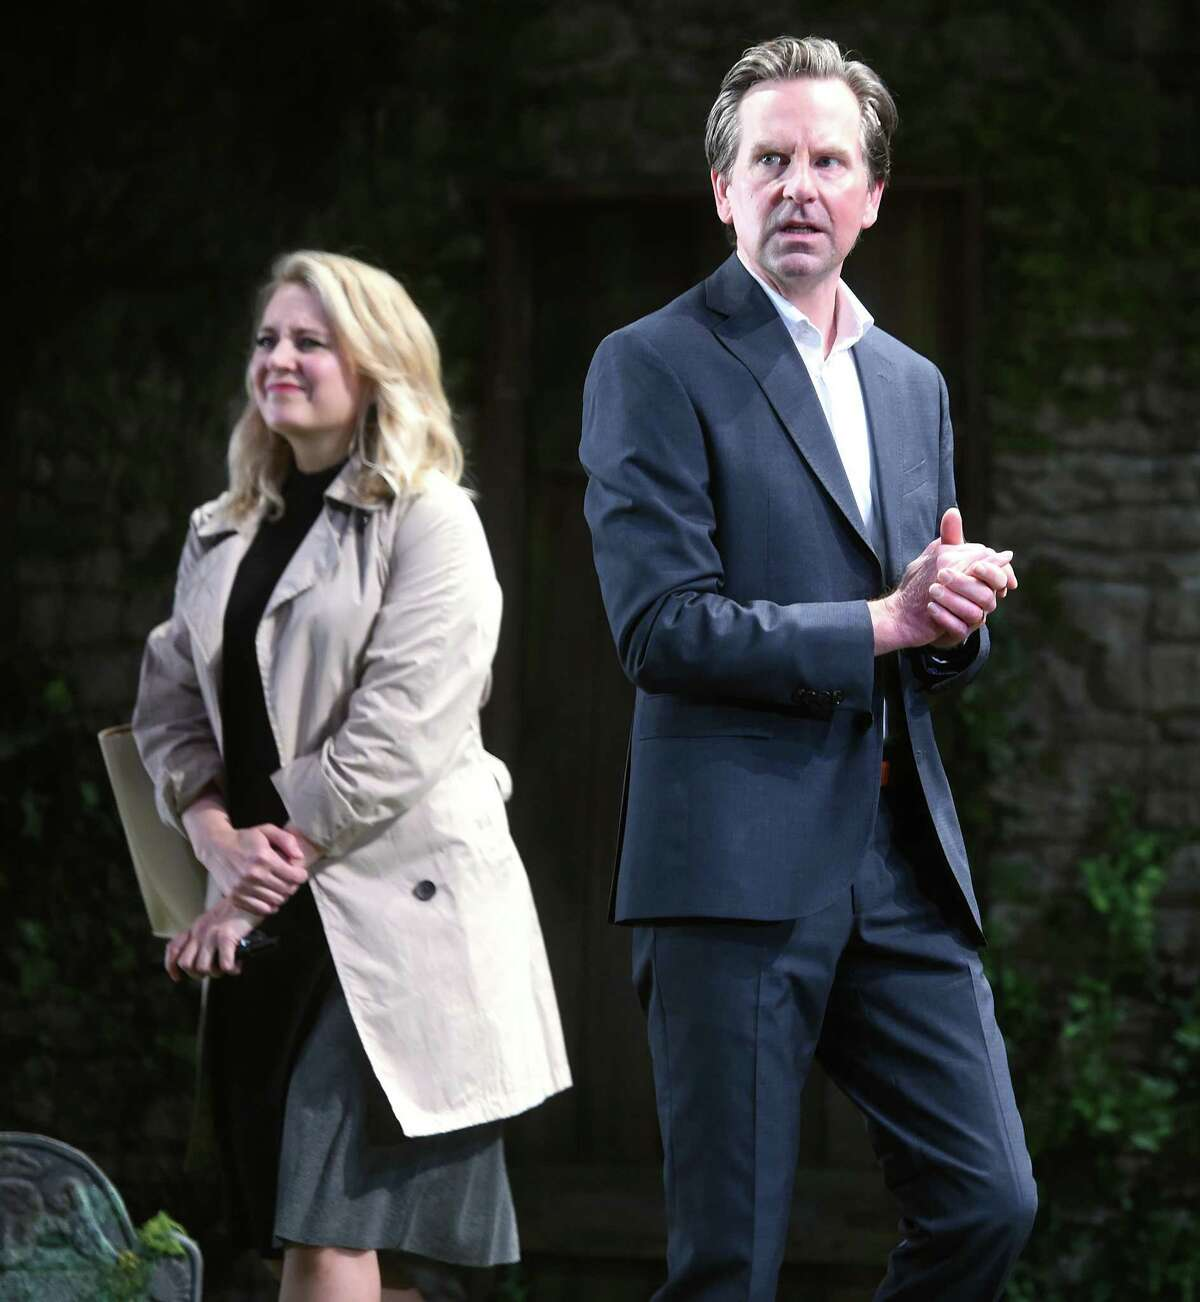 Stephen Barker Turner as Tim and Jennifer Mudge as Donna act in a dress rehearsal of